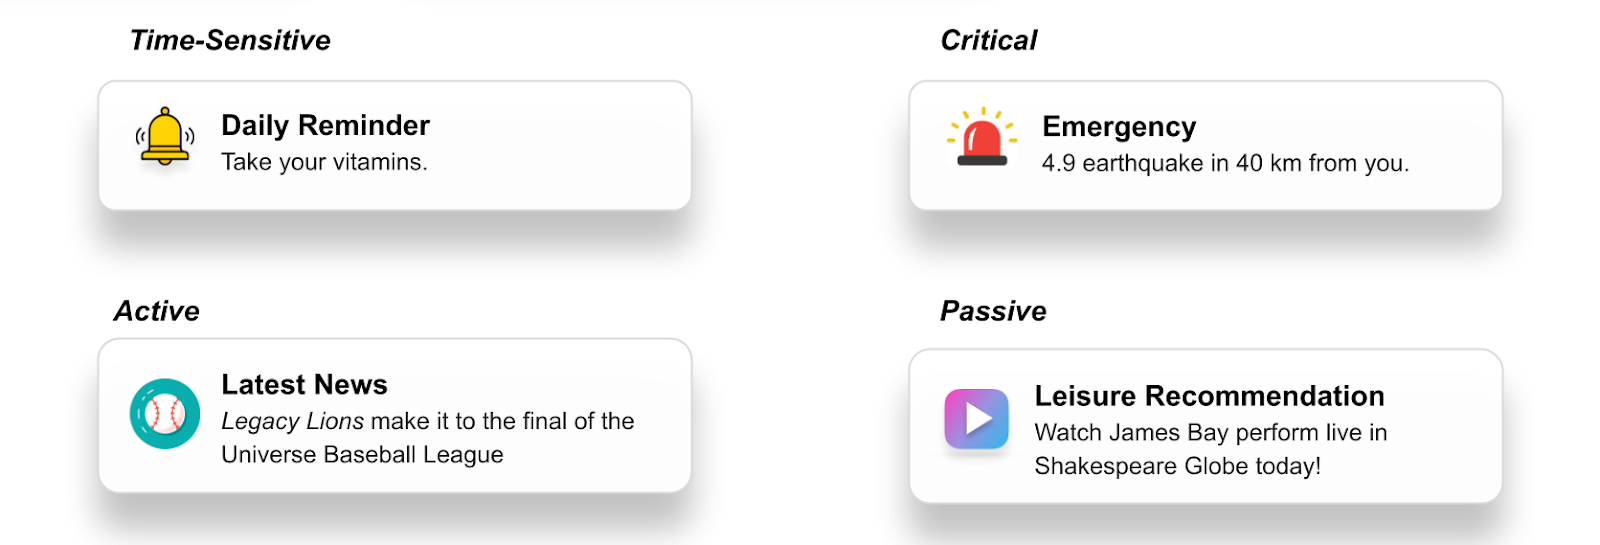 Push Notifications in iOS 15 Examples: Time-Sensitive, Critical, Active, and Passive